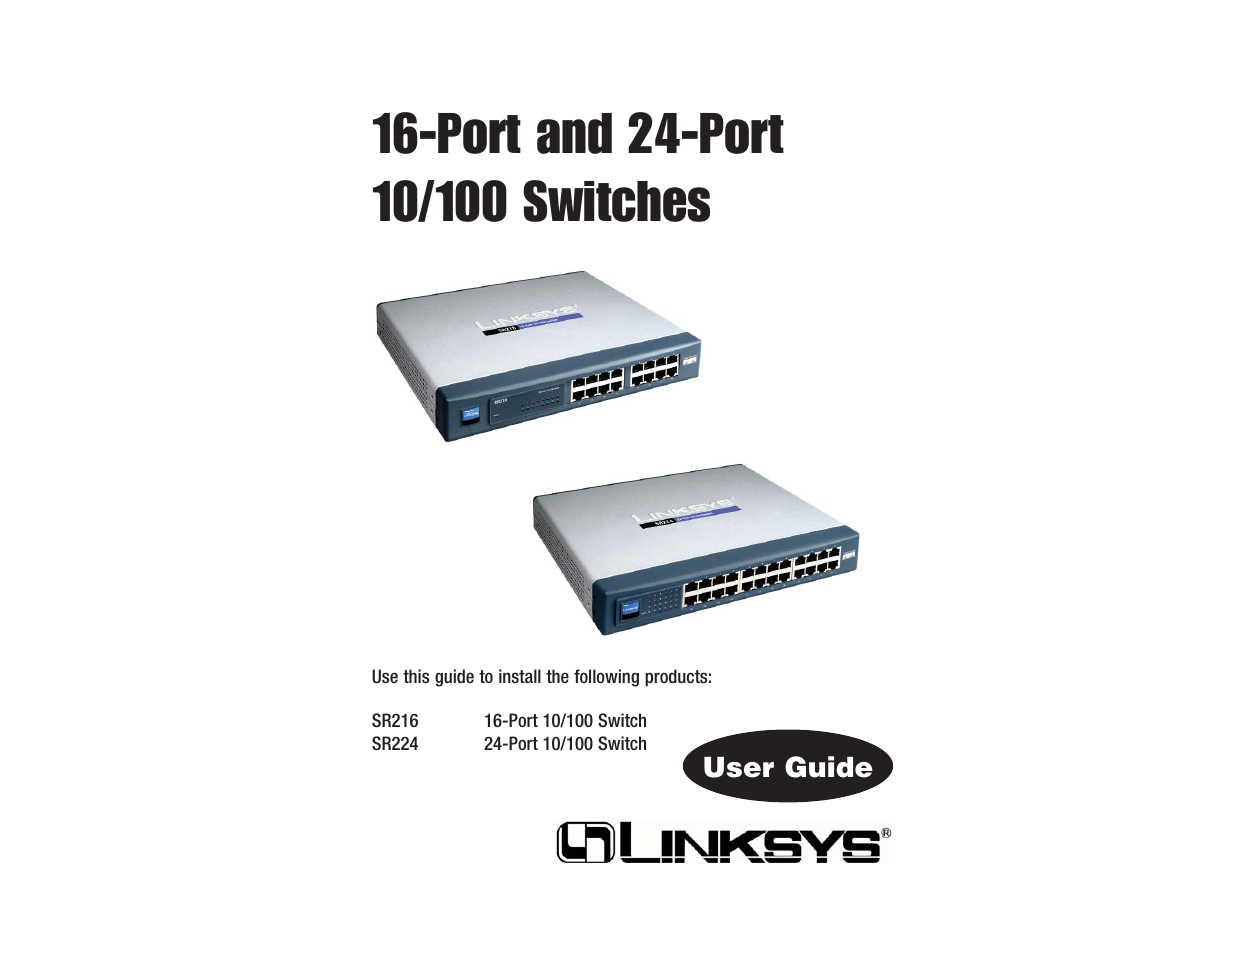 linksys sr216 user manual 9 pages rh manualsdir com Cisco Linksys Linksys Sr224